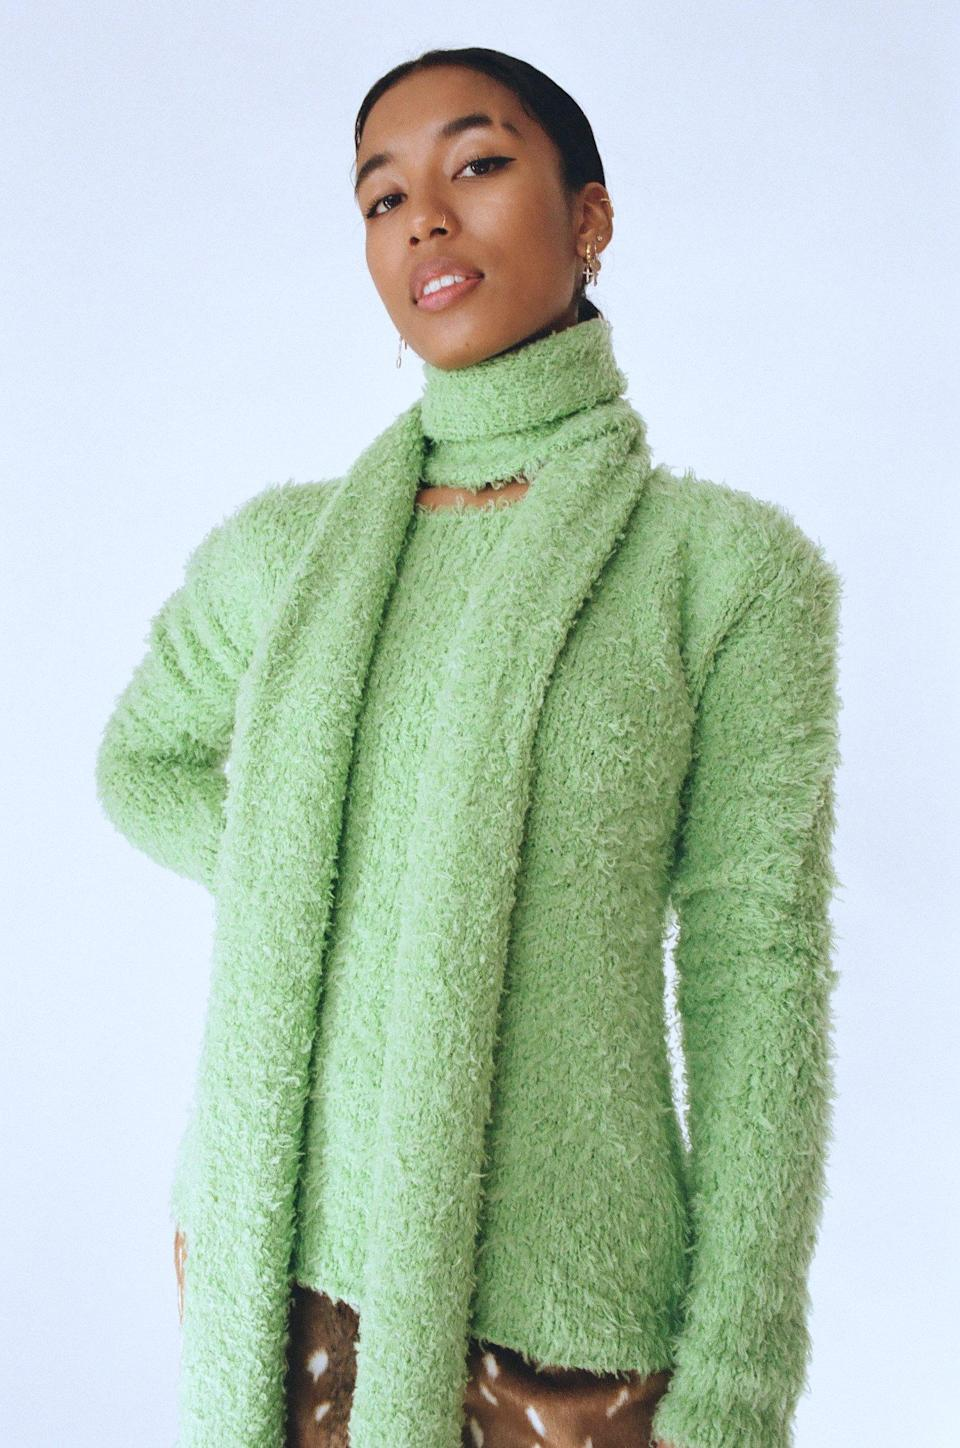 """In case you didn't know, matching your scarf to your sweater is a thing. $313, Sincerely Tommy. <a href=""""https://sincerelytommy.com/collections/tops/products/annie-knit-sweater-and-scarf-set"""" rel=""""nofollow noopener"""" target=""""_blank"""" data-ylk=""""slk:Get it now!"""" class=""""link rapid-noclick-resp"""">Get it now!</a>"""